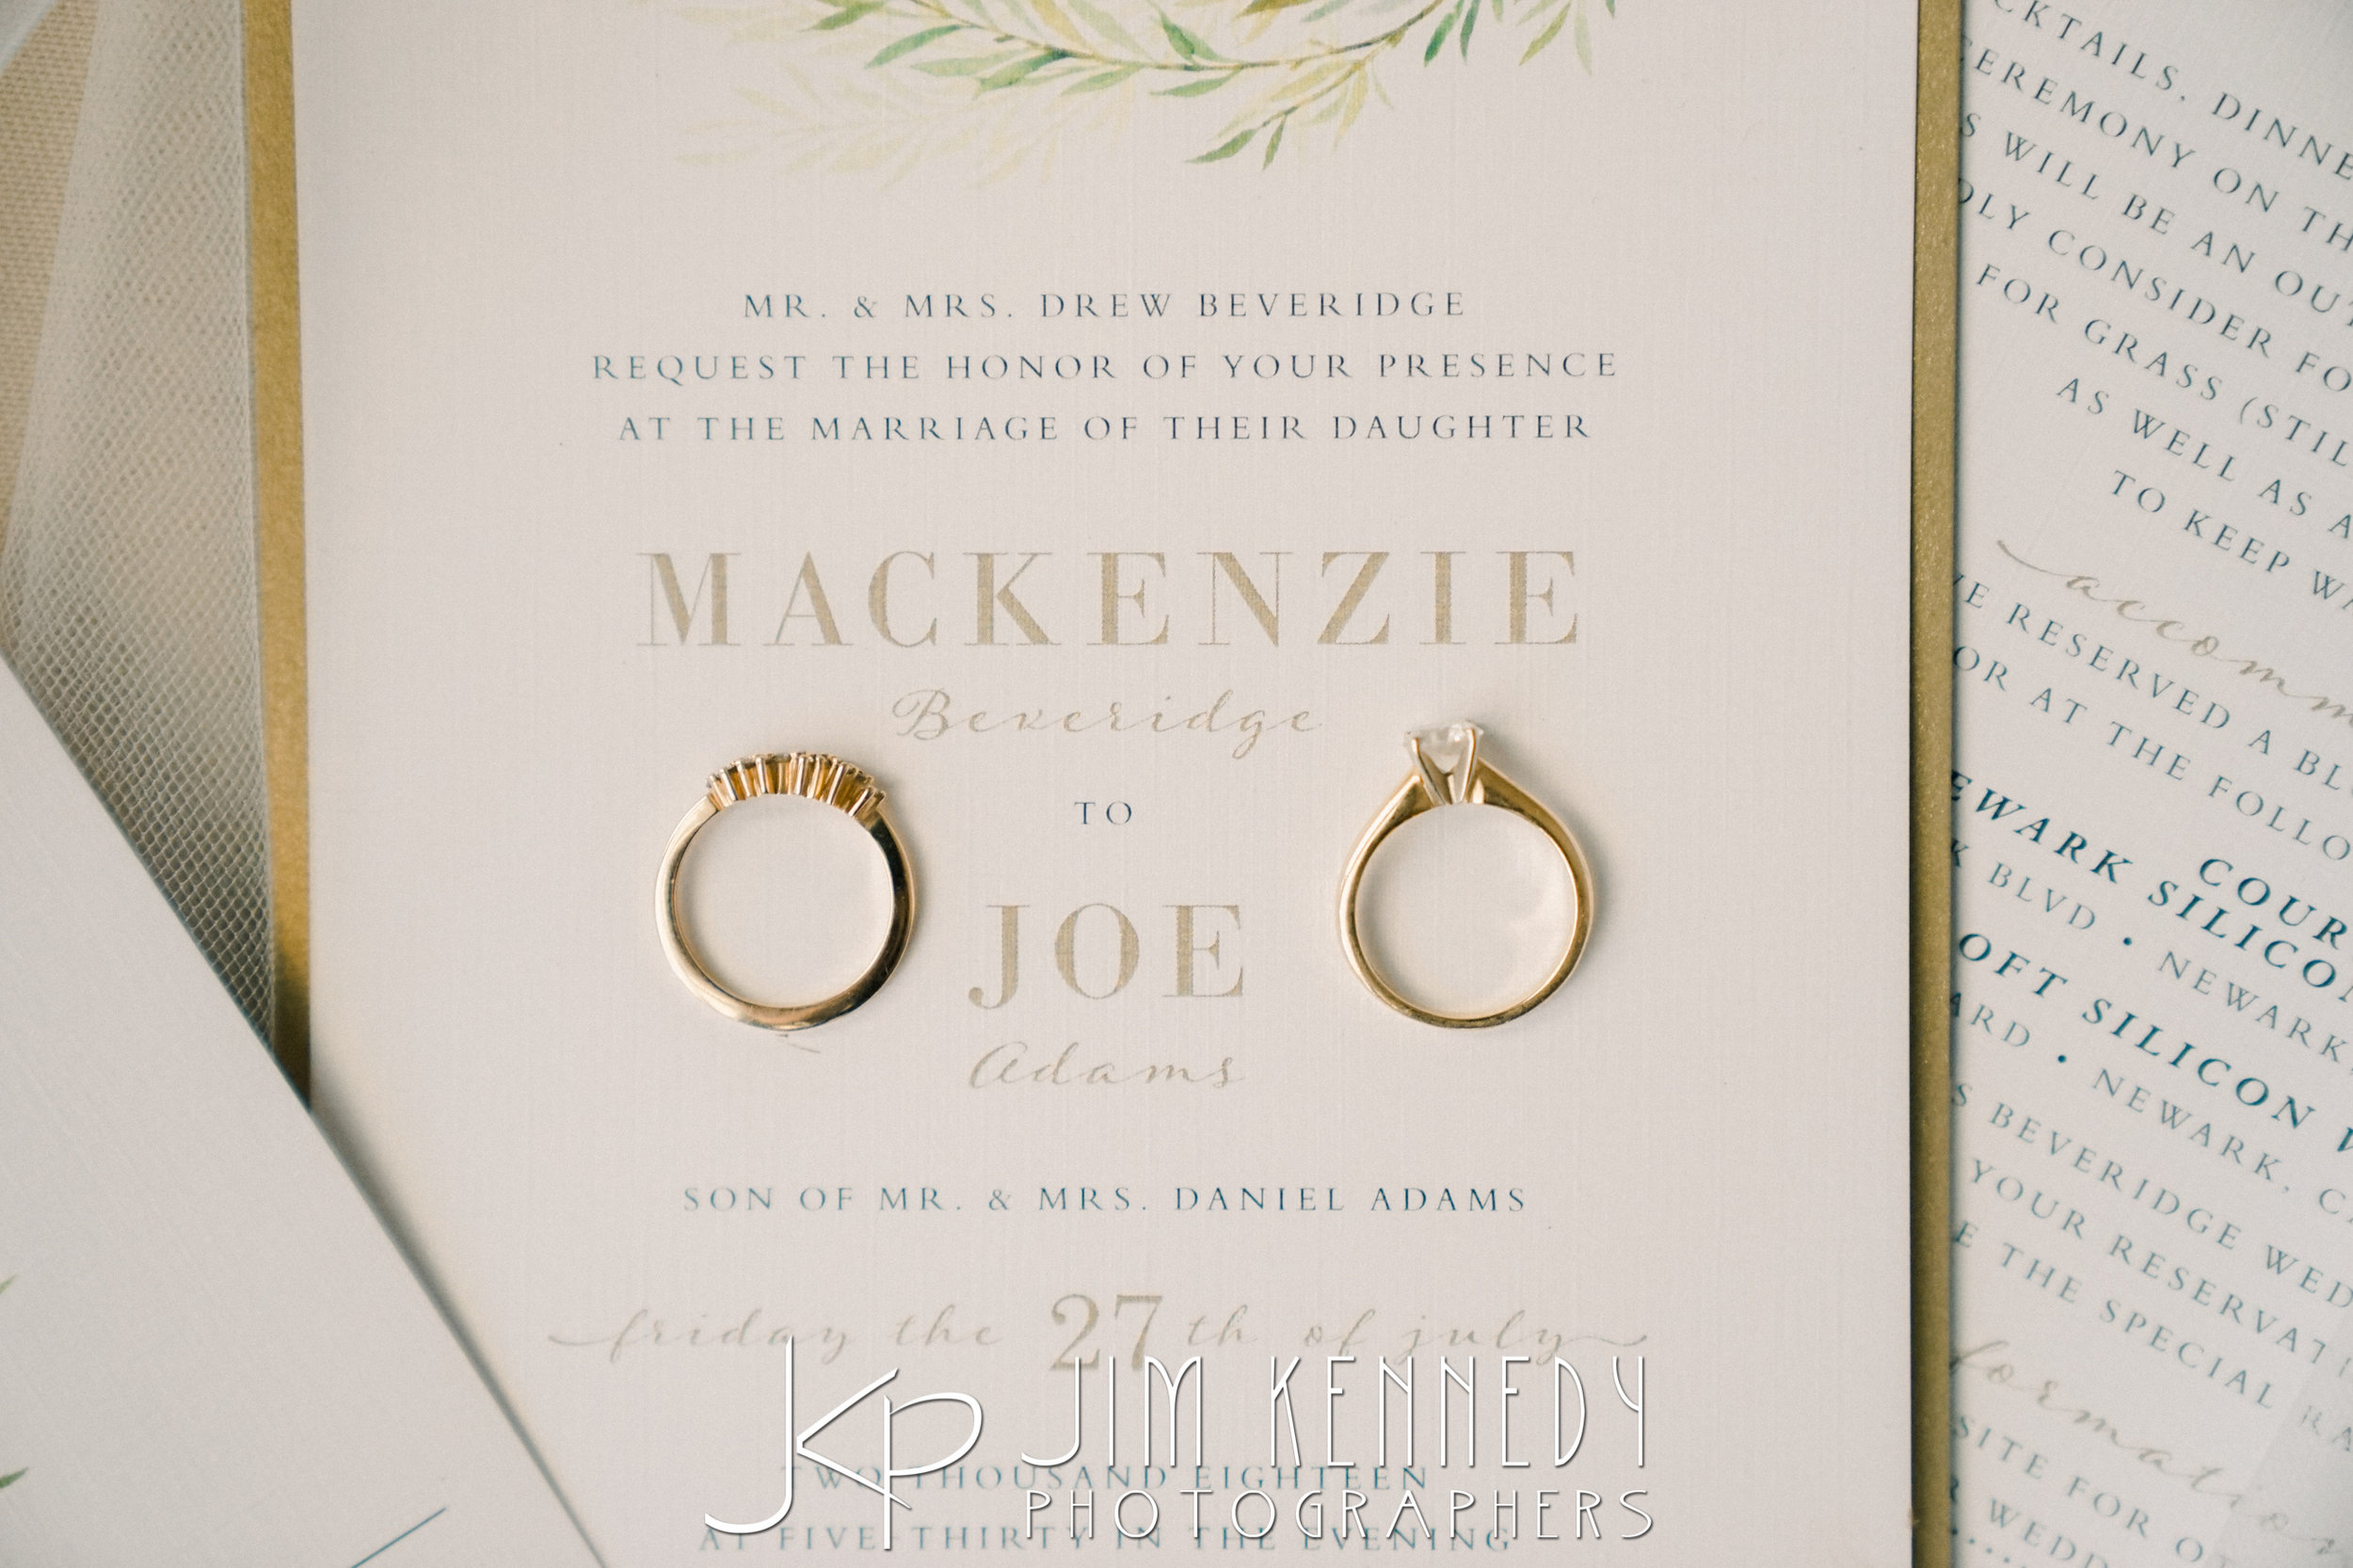 ardenwood-events-wedding-mackenzie_011.JPG